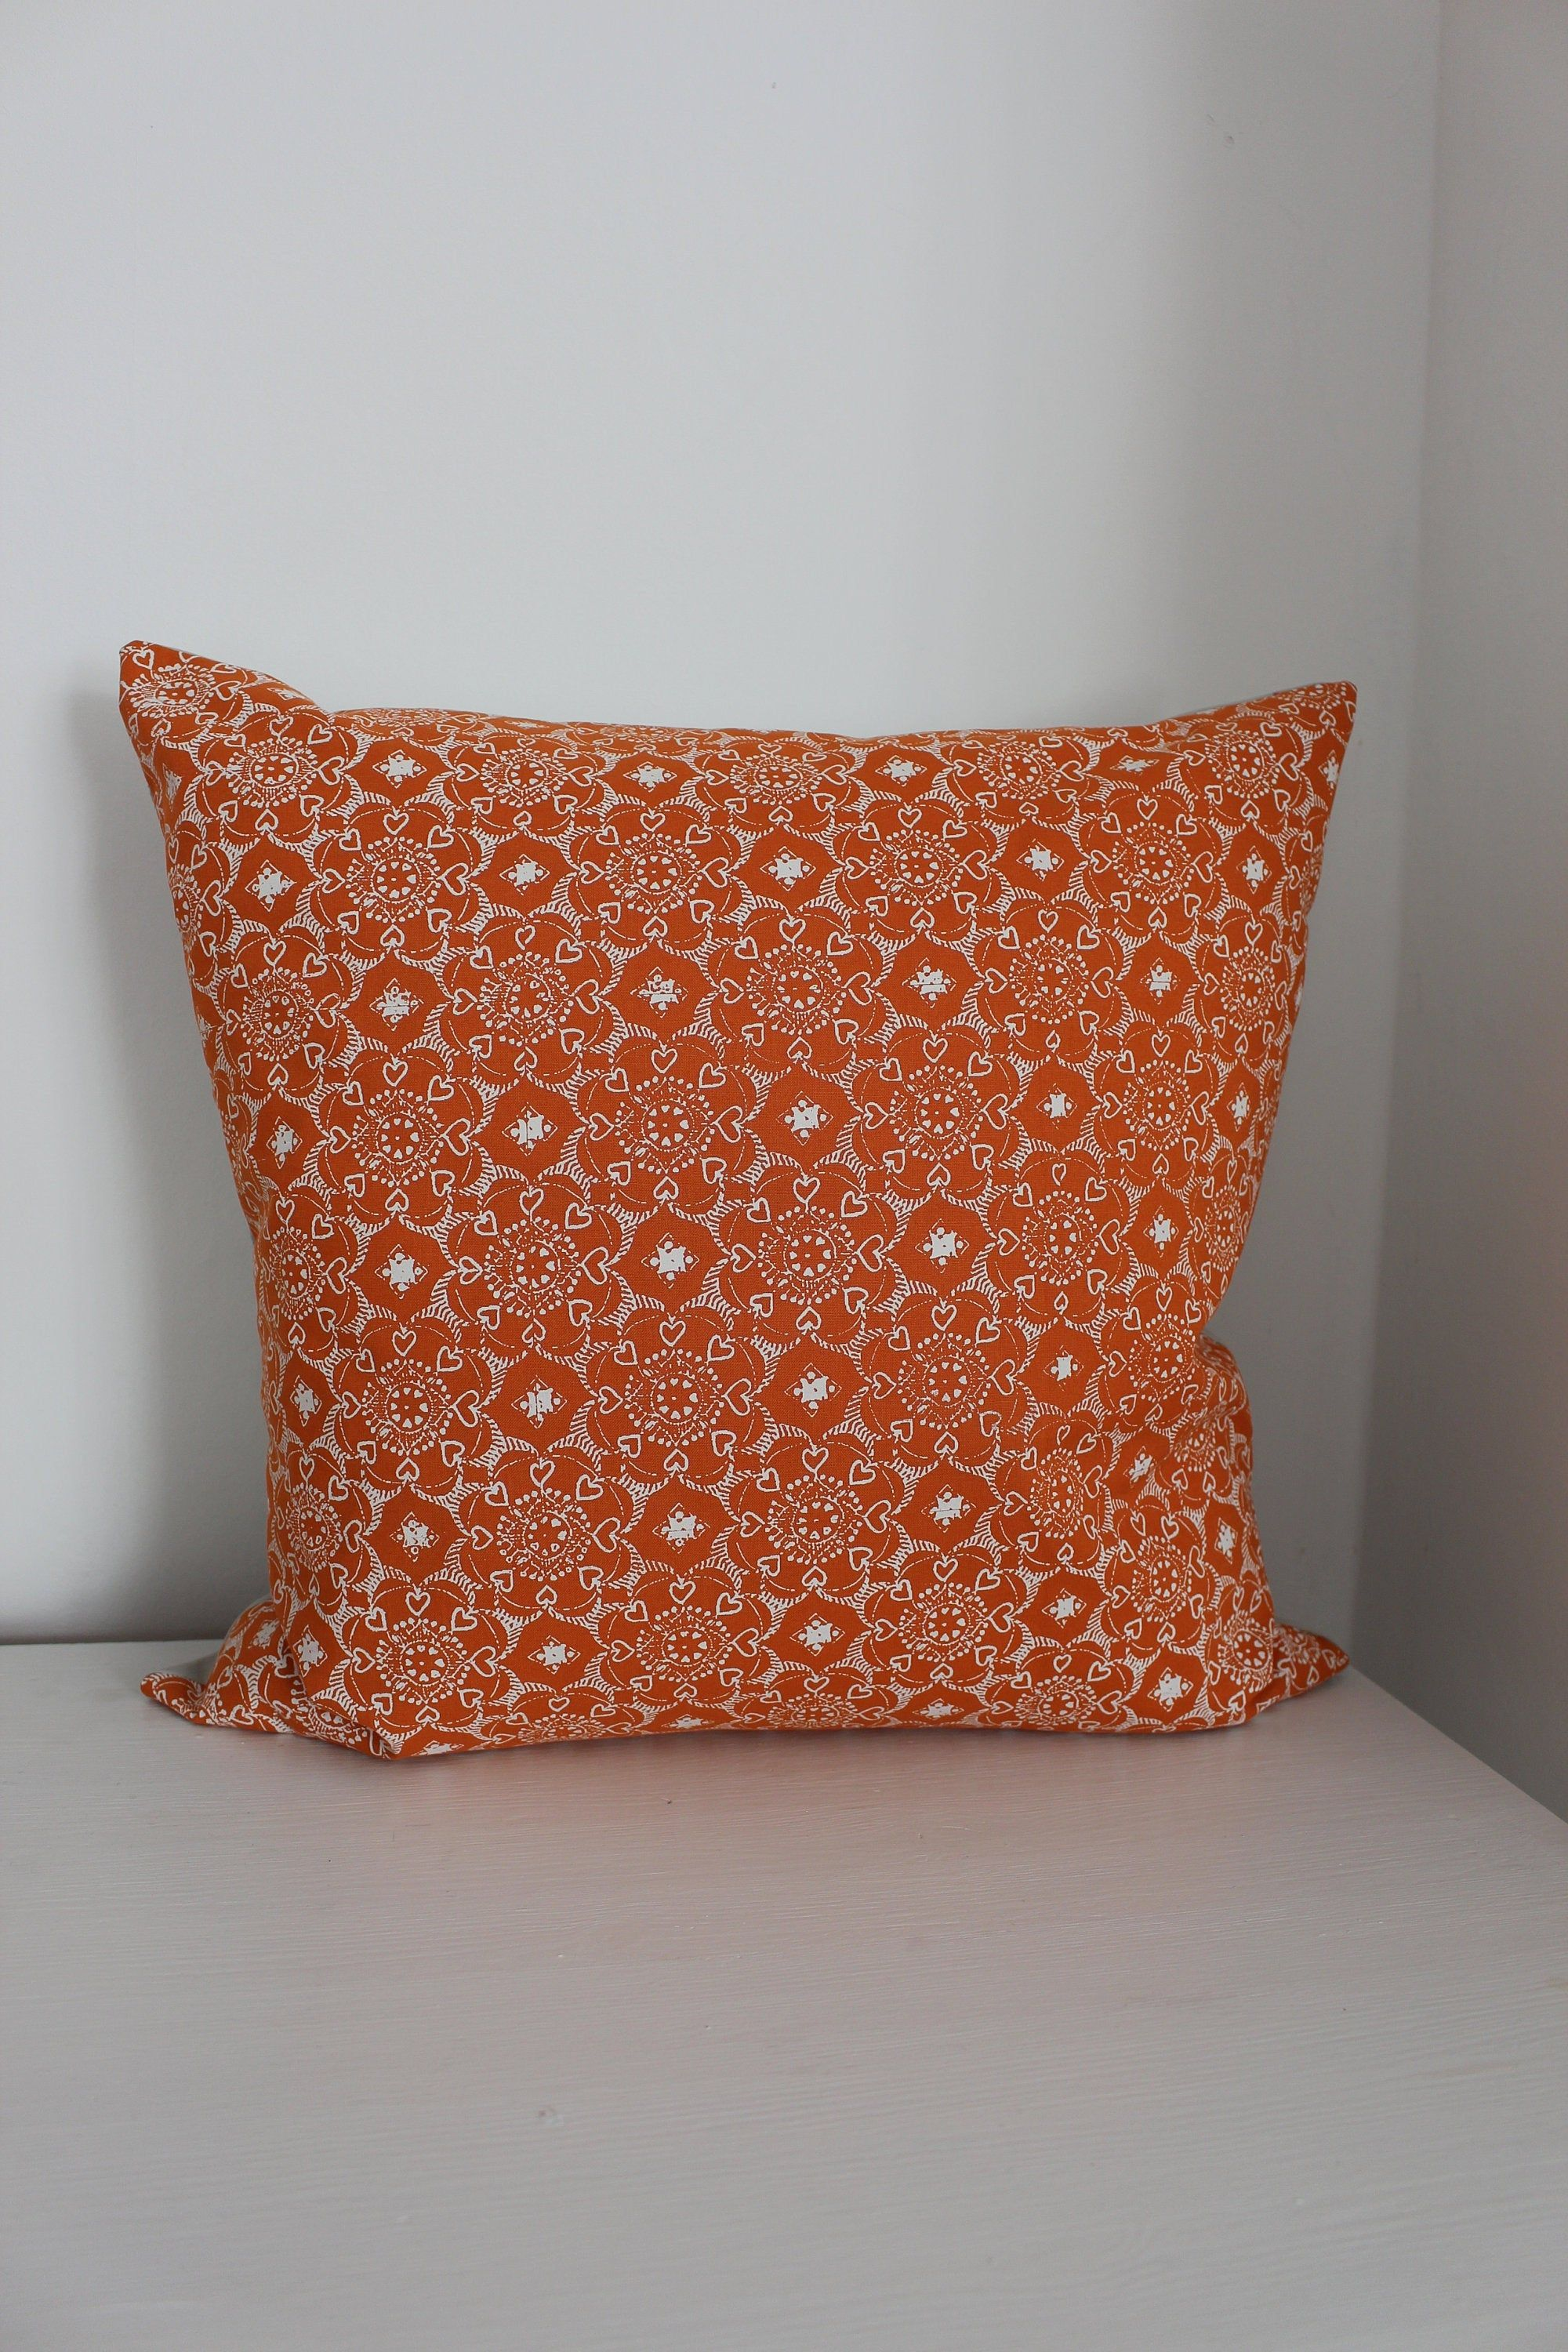 Cushion 50x50 Orange Cream Light Grey Boho Pillow Cover Mandala Mother S Day Artdeco Scandi Ornament Hygge Ornamental Pillow Sofa Pillow Hand Printed In 2020 Boho Pillows Boho Cushions Cotton Pillow Cases